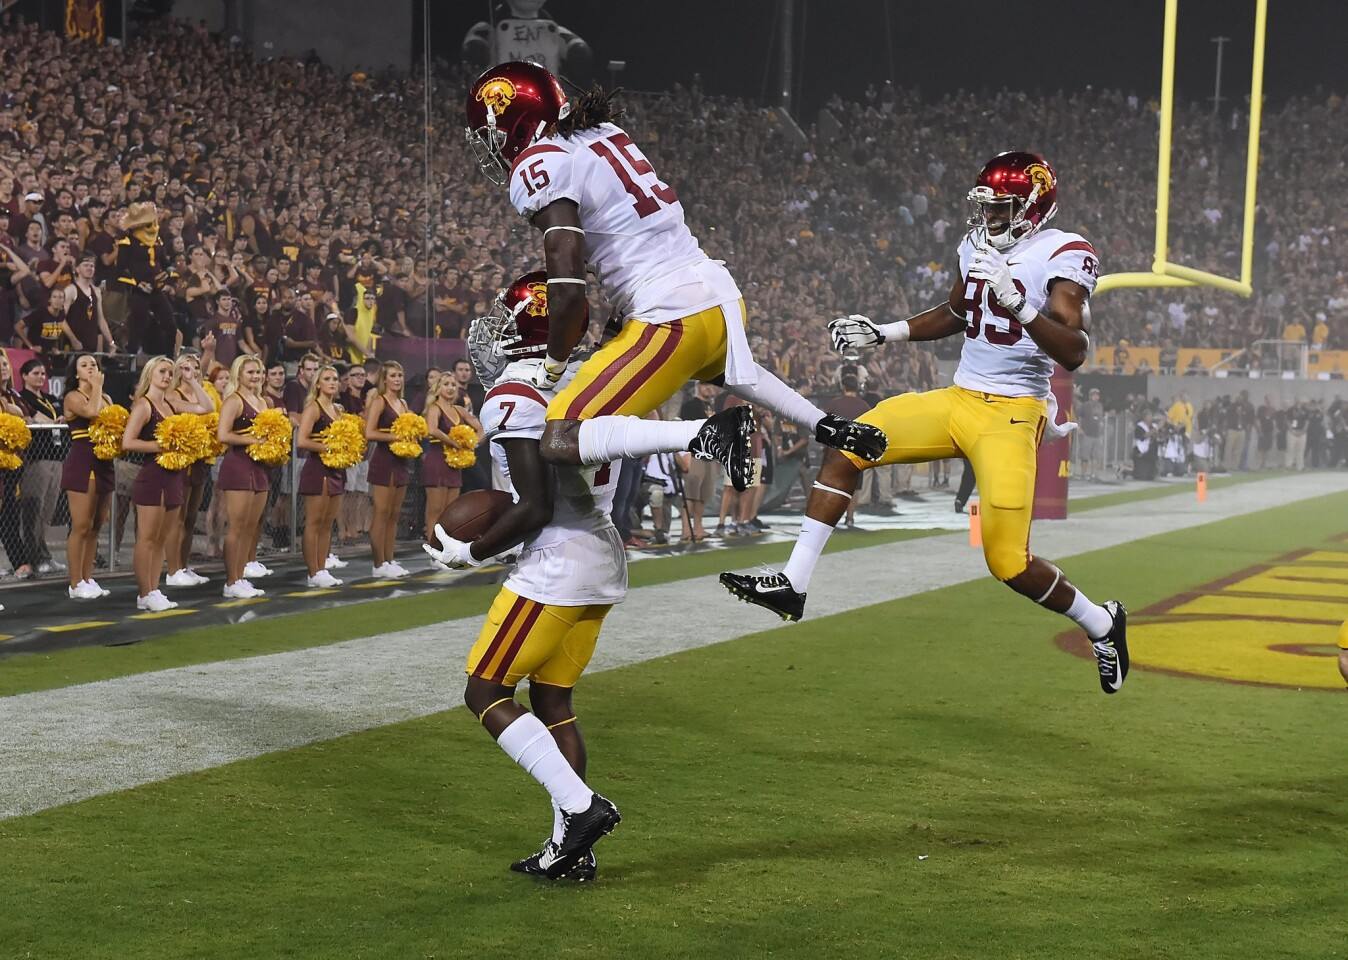 USC's Steven Mitchell Jr. (7) is joined in celebration by teammates Isaac Whitney (15) and De'Quan Hampton after his 27-yard touchdown reception in the second quarter Sept. 26 against Arizona State.